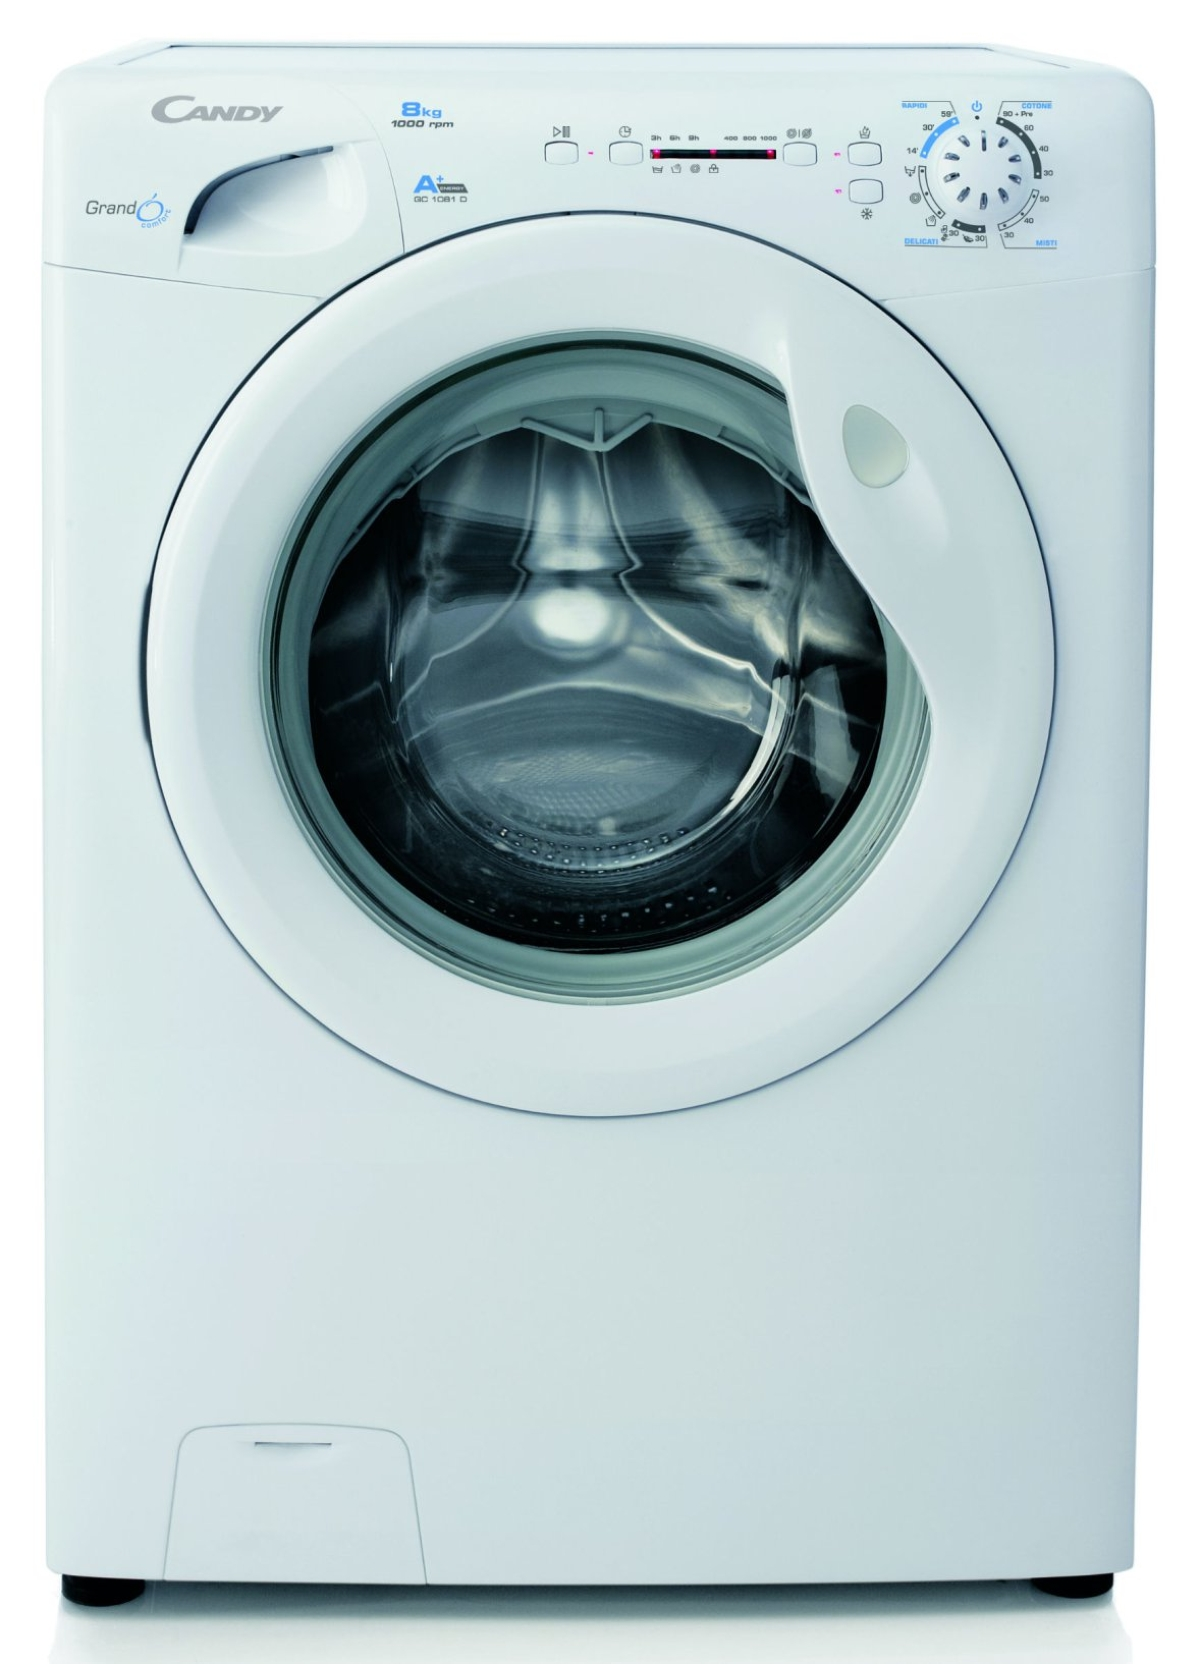 Which washing machine to choose, candy GC 1081d-01